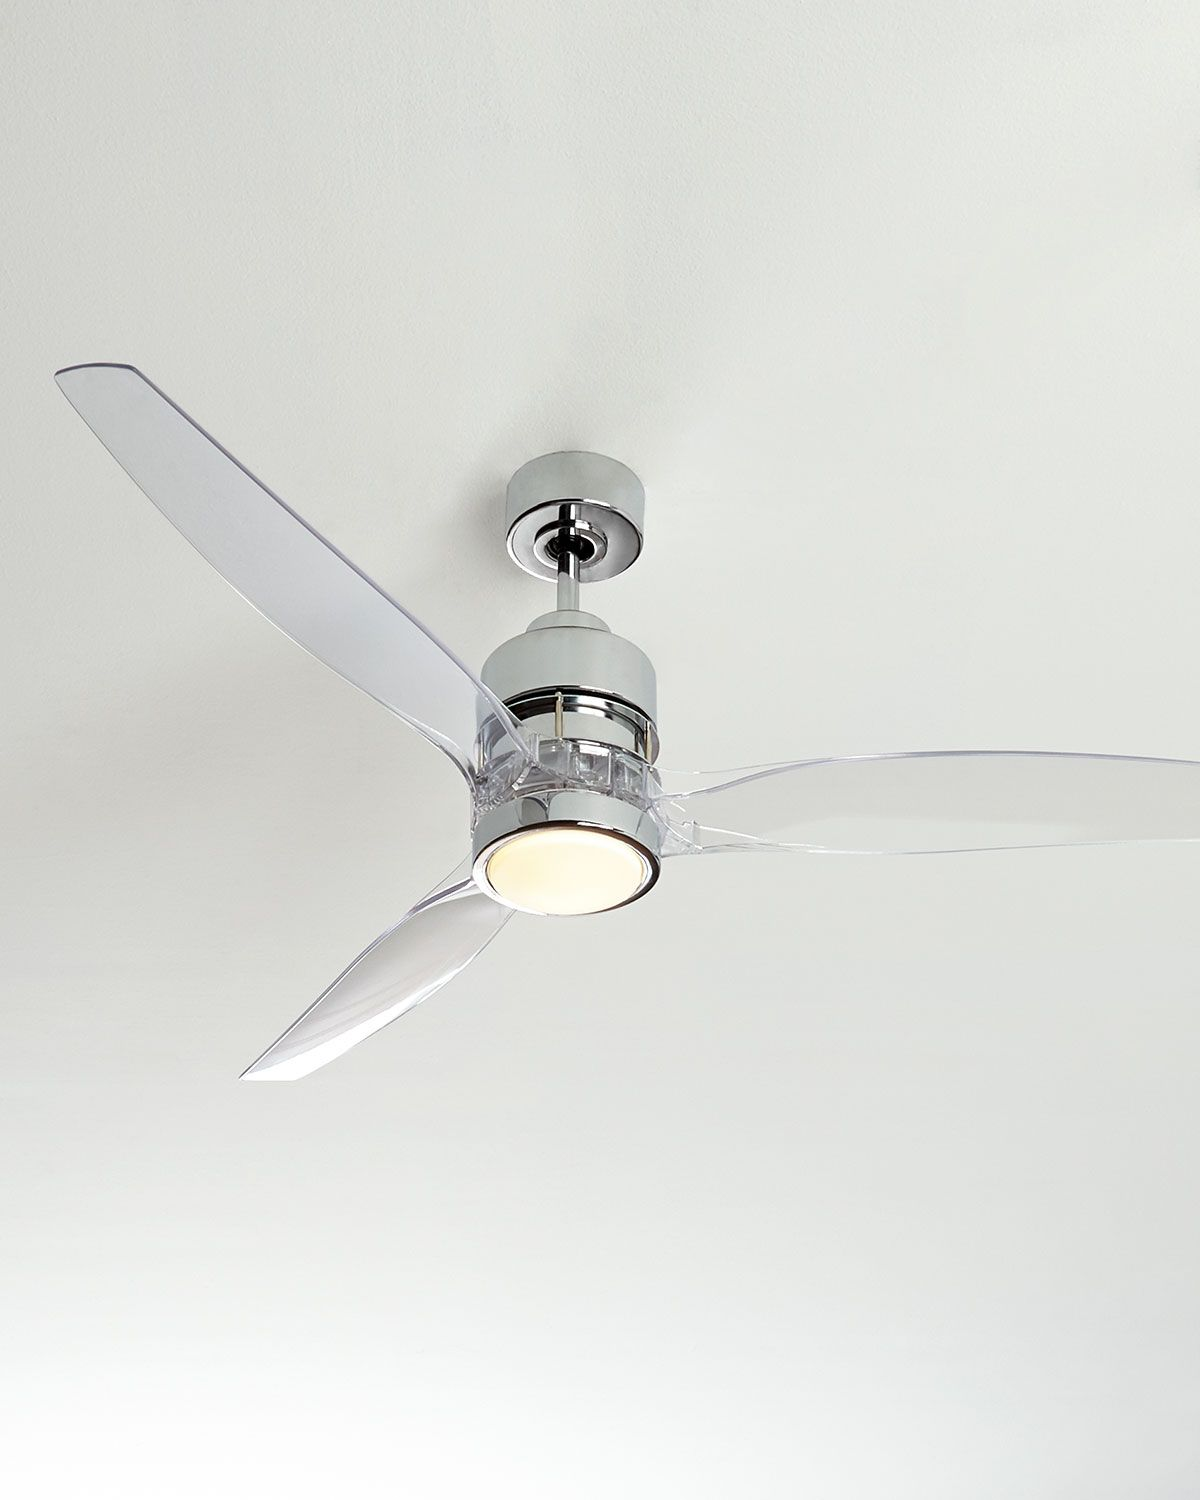 Sonet 52 acrylic ceiling fan ceiling fan ceilings and lights milo 52 acrylic ceiling fan mozeypictures Choice Image